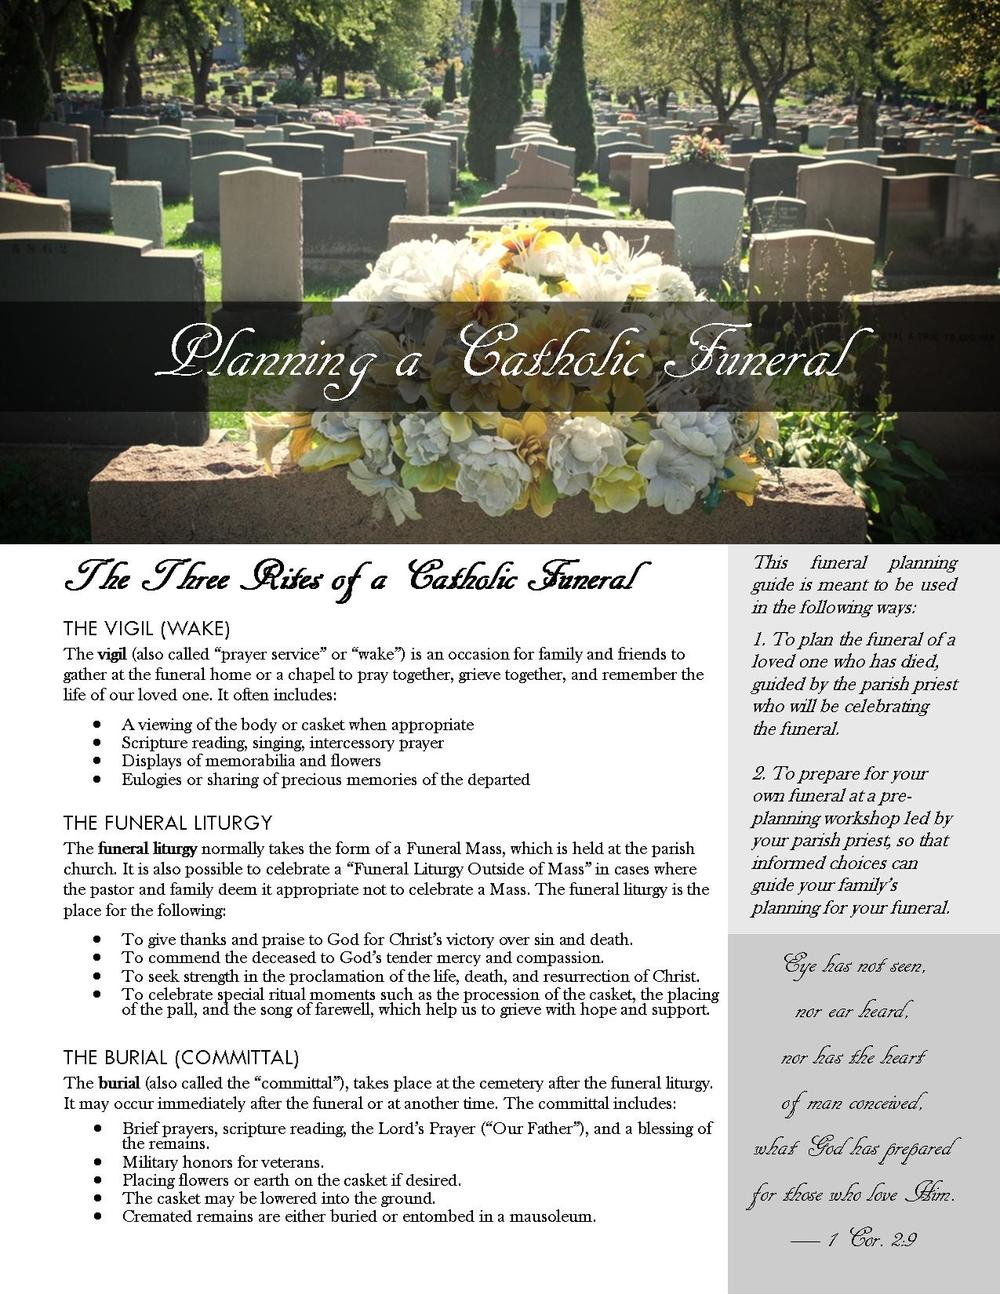 Funerals diocese of new ulm printable resources for funerals izmirmasajfo